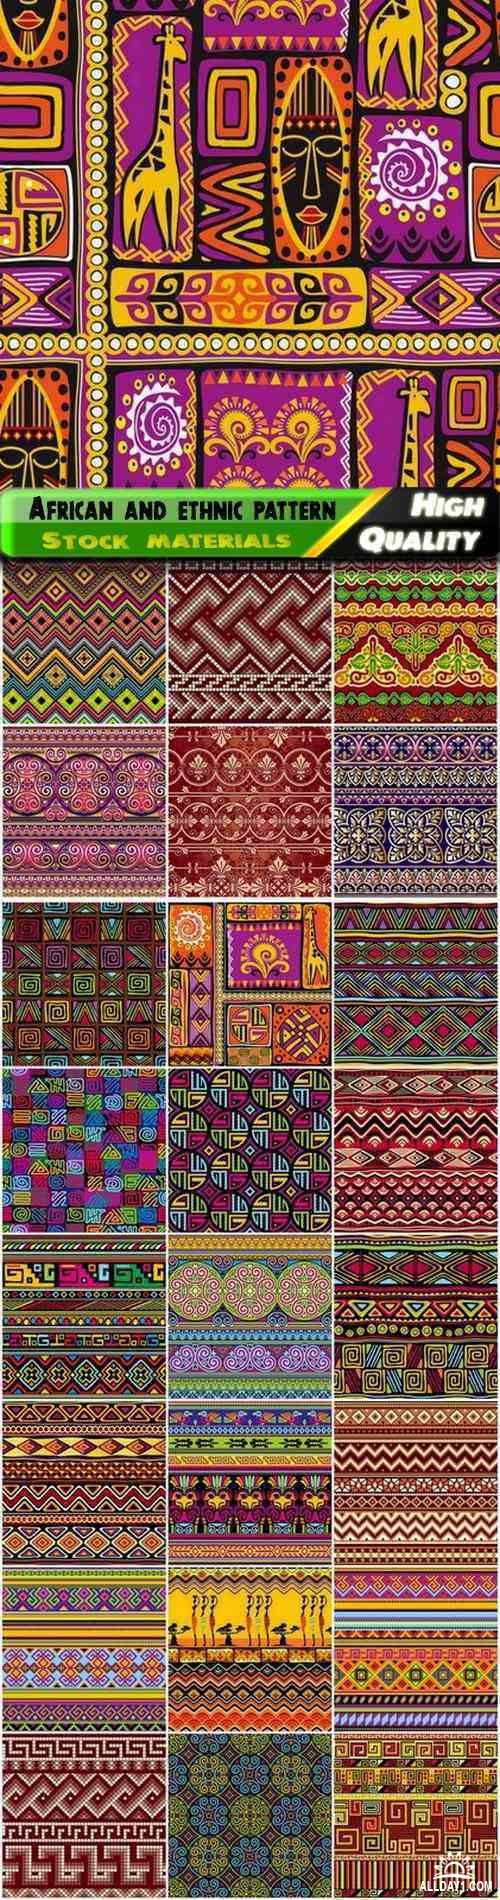 Abstract african and ethnic seamless pattern and ornament - 25 Eps